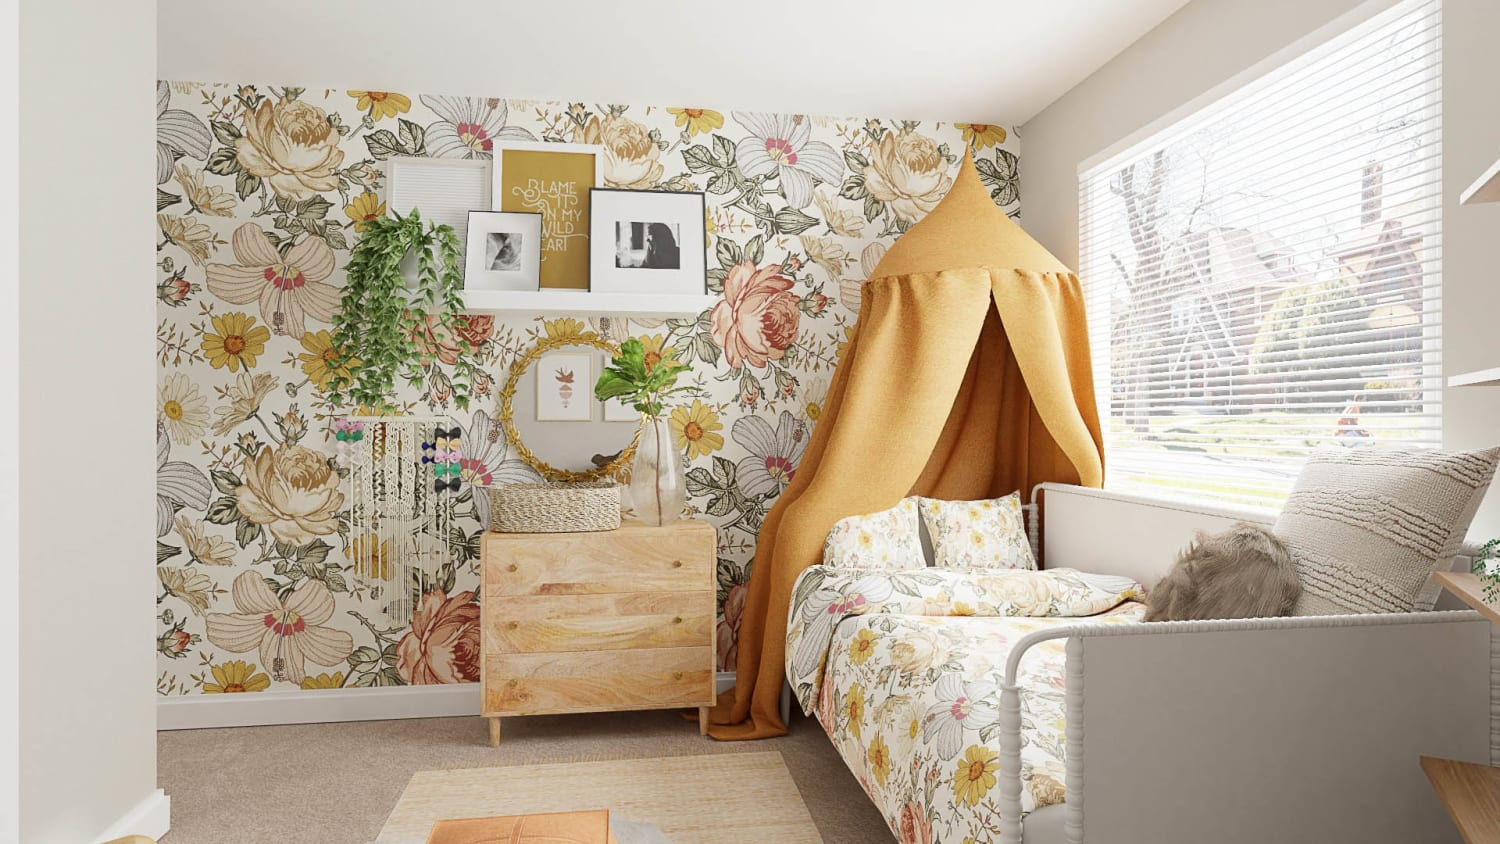 10 Small Kids Bedroom Ideas You Should Use For Small Spaces Spacejoy